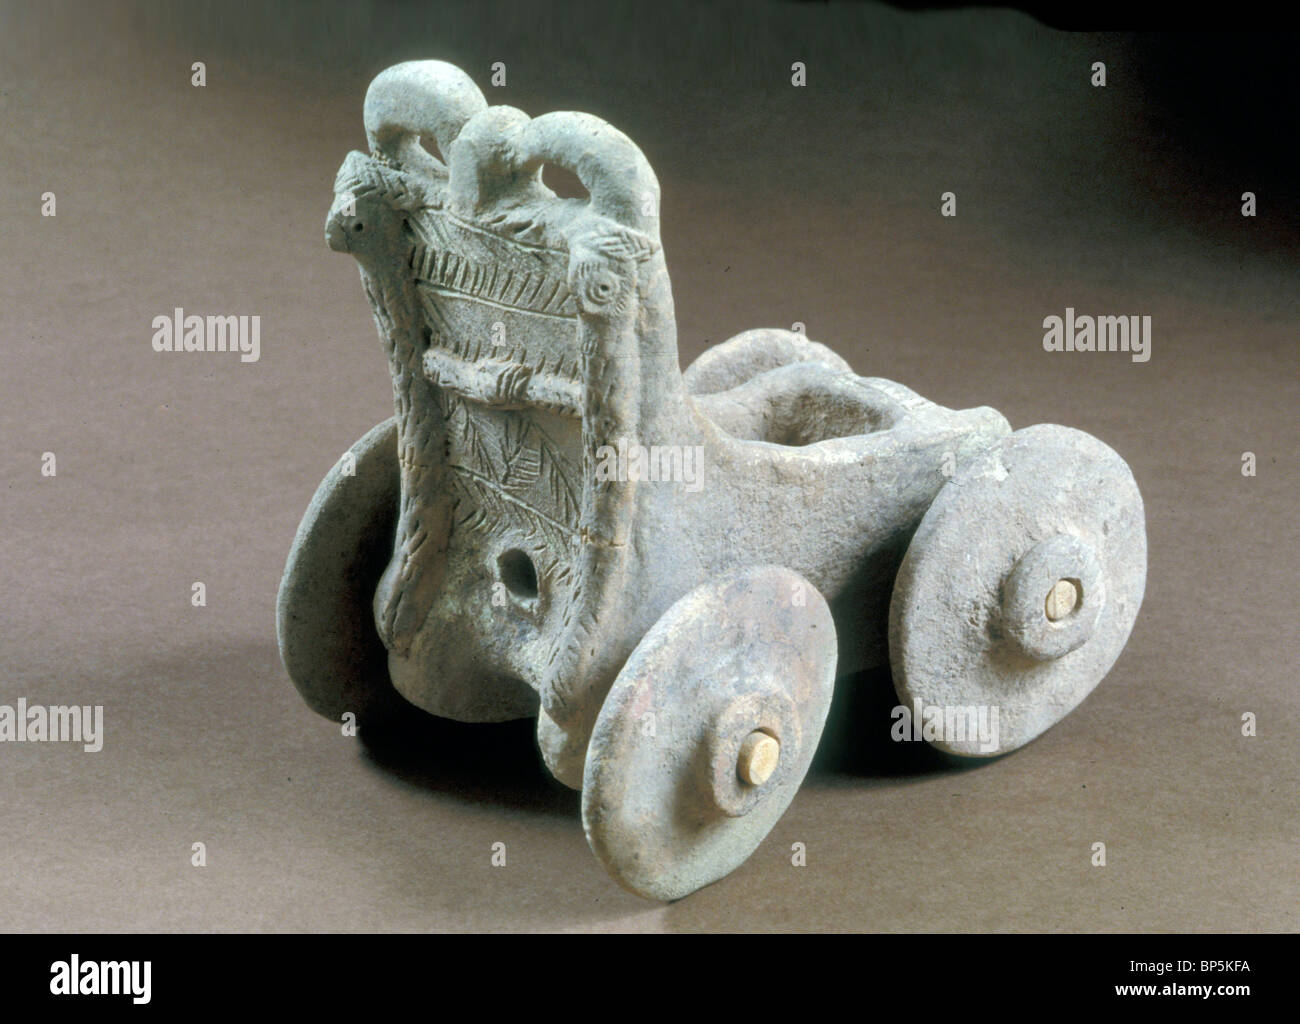 FOUR WHEELED TERRACOTTA MODEL OF A CHARIOT DEPICTS THE TYPE OF VEHICLE USED IN THE THIRD & EARLY SECOND MILLENNIUM - Stock Image